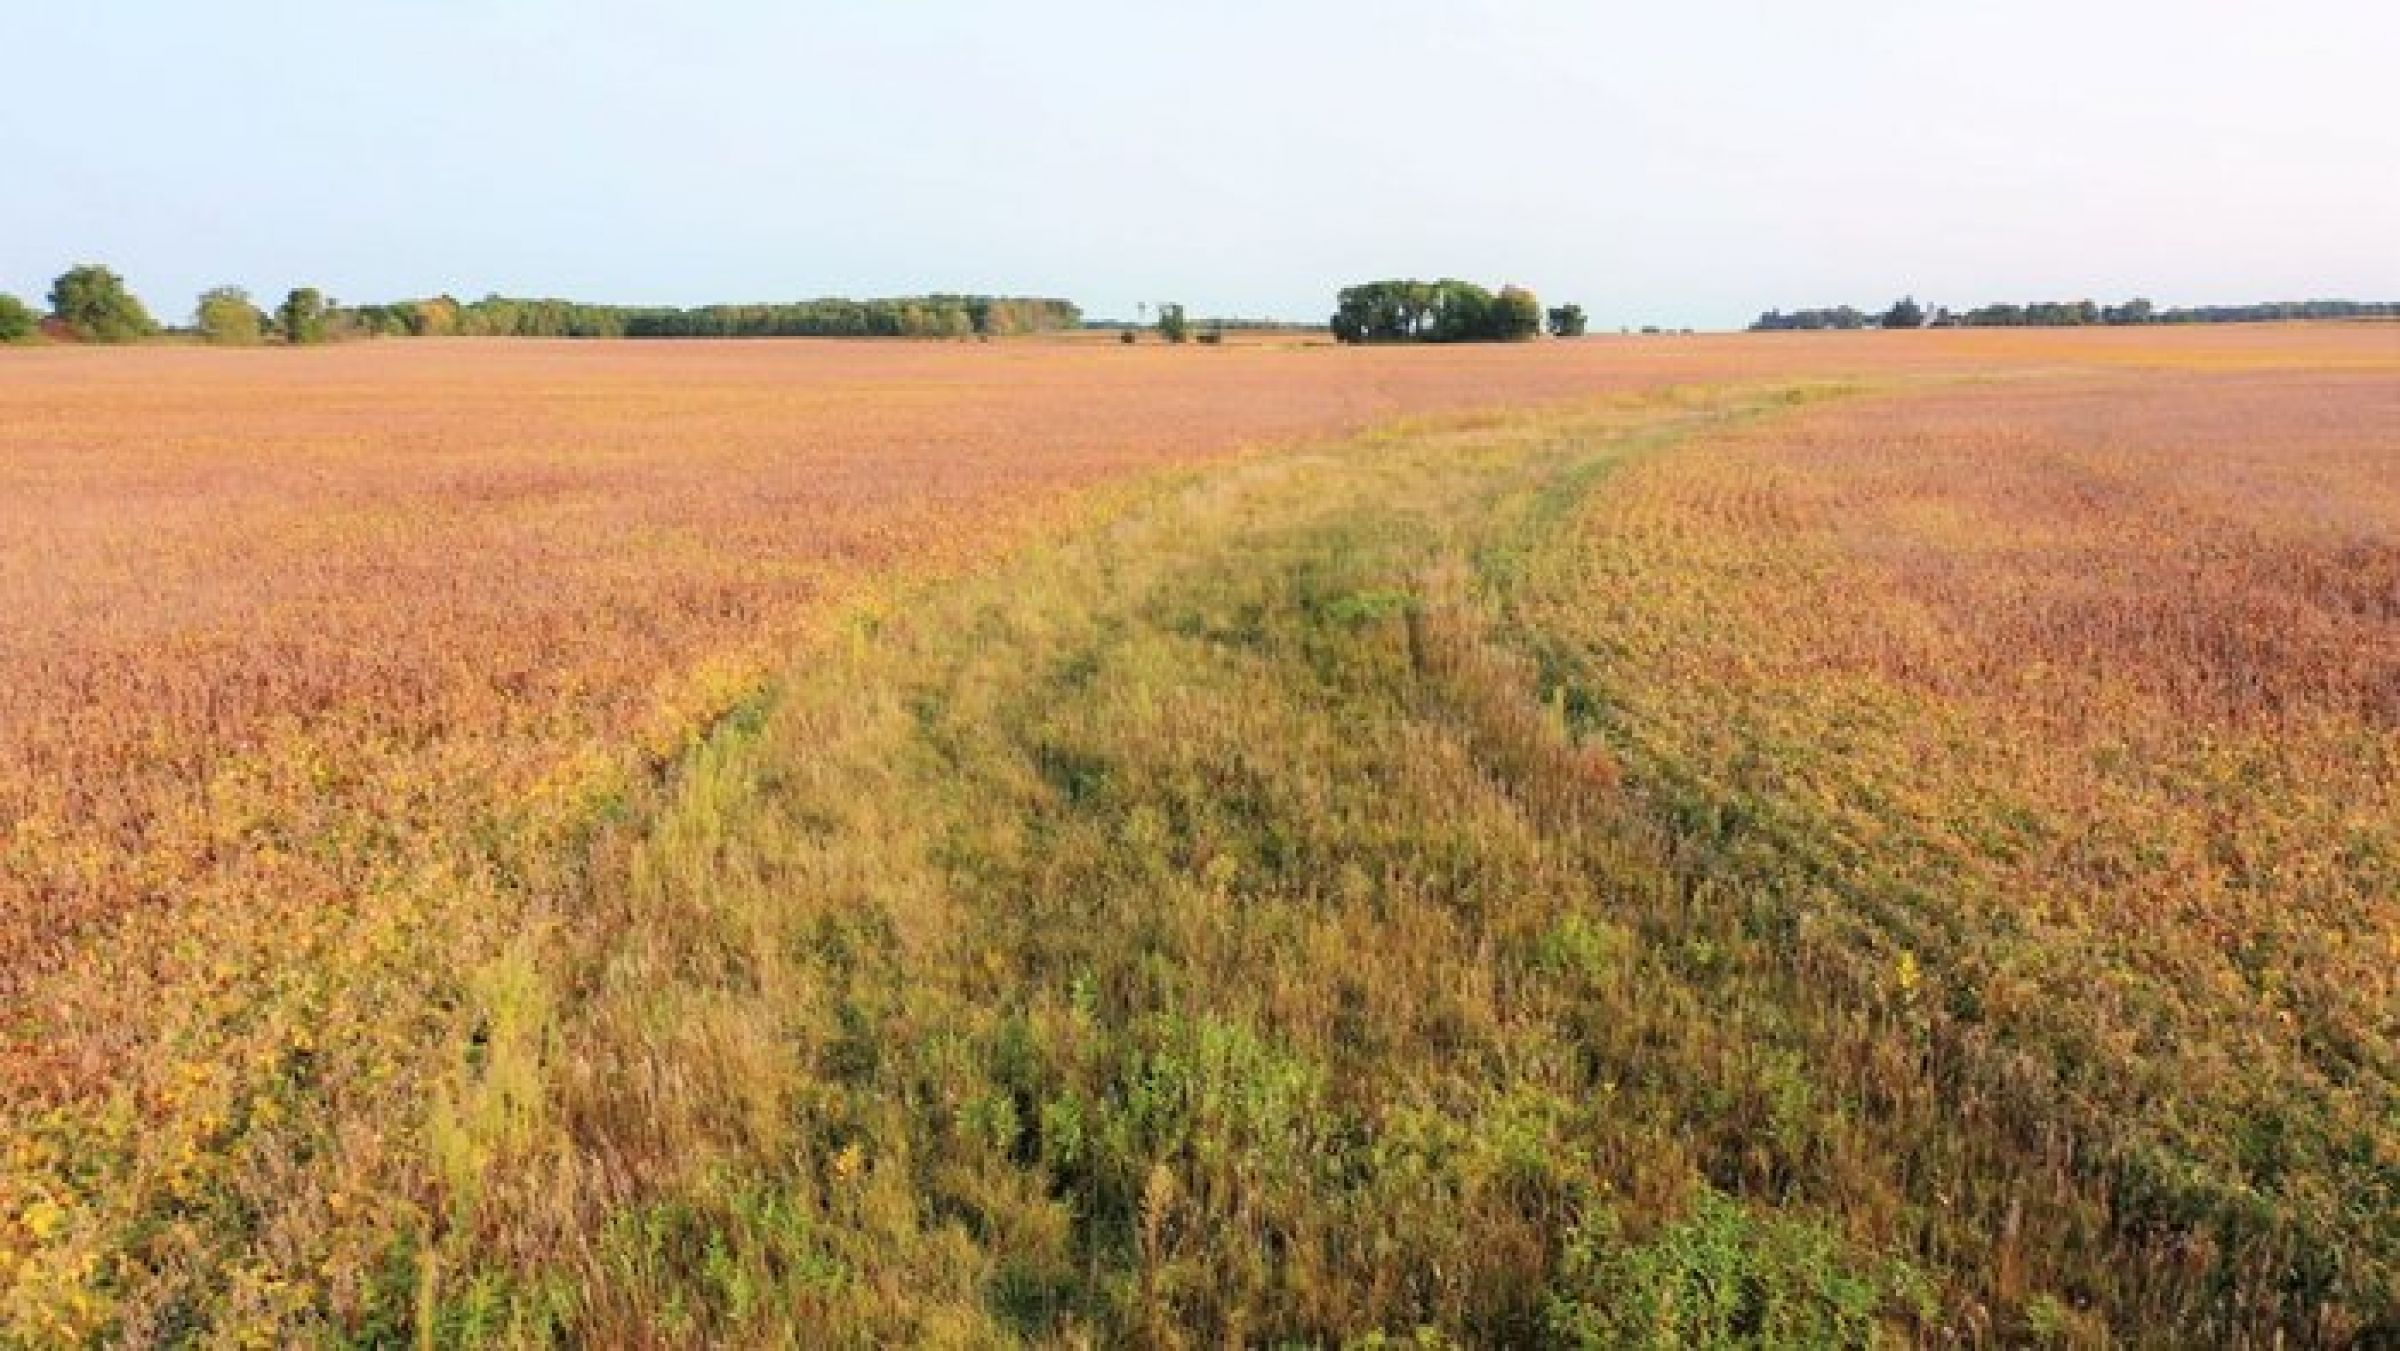 mitchell-county-iowa-113-acres-listing-number-15222-0-2020-10-19-190025.